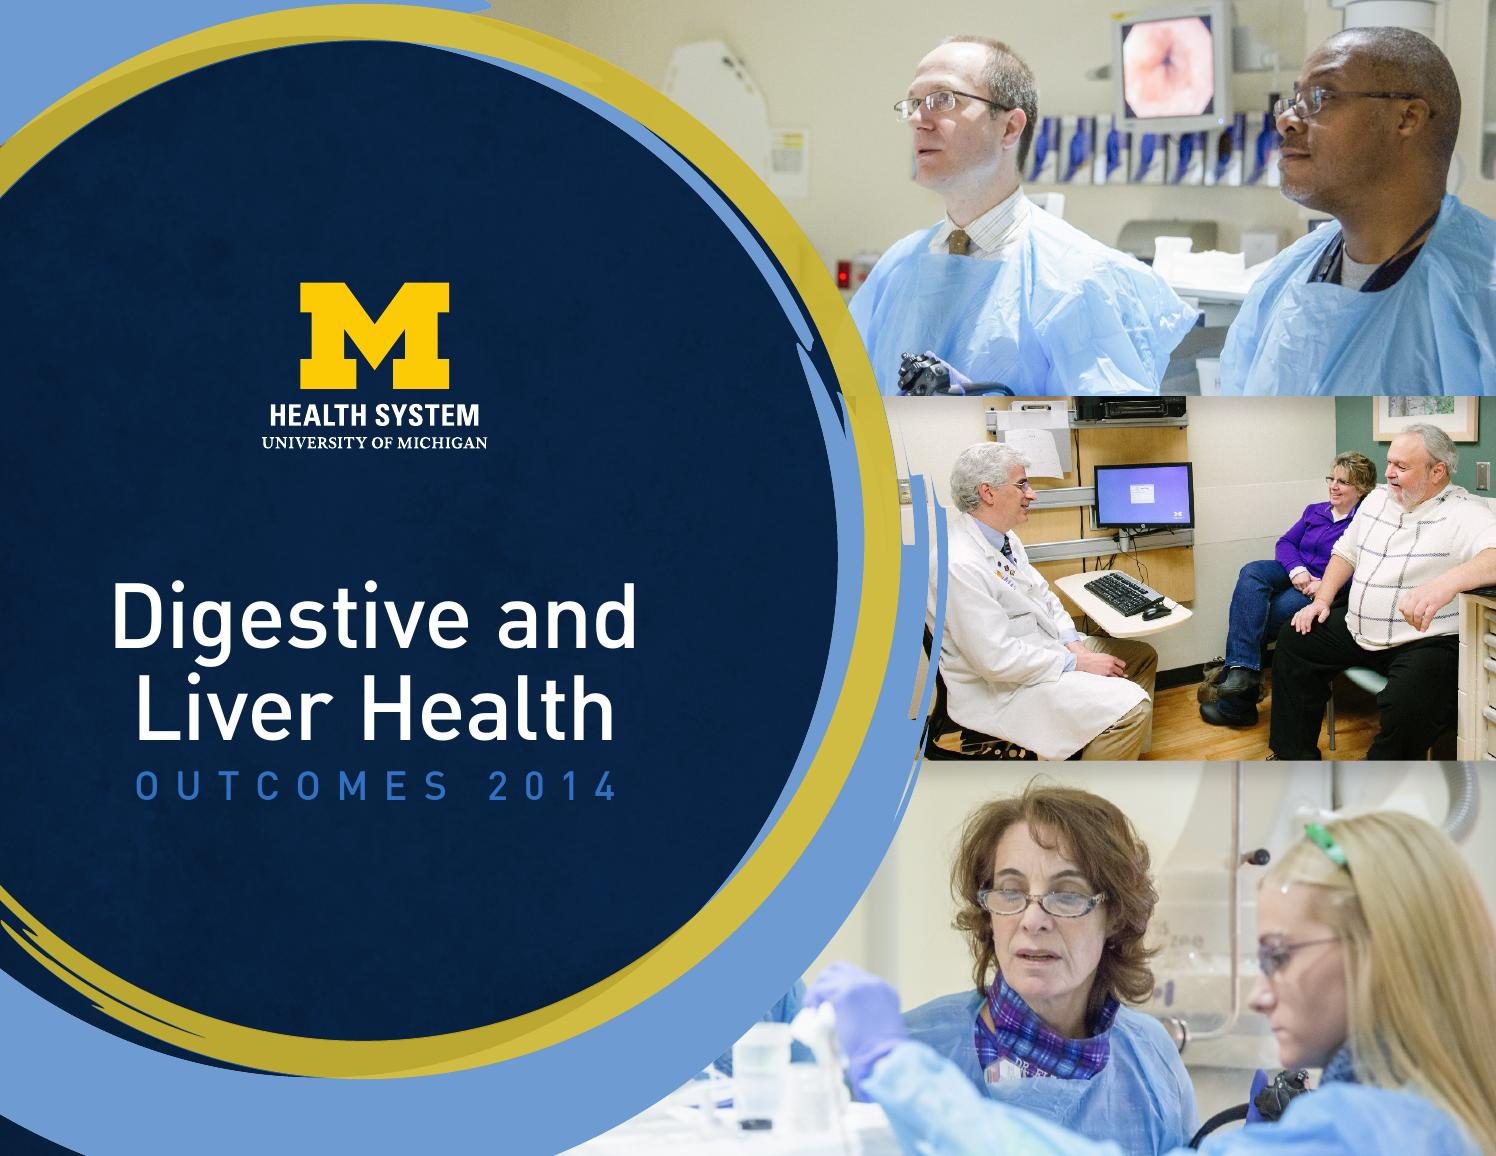 Digestive and Liver Health Outcomes 2014 by Michigan